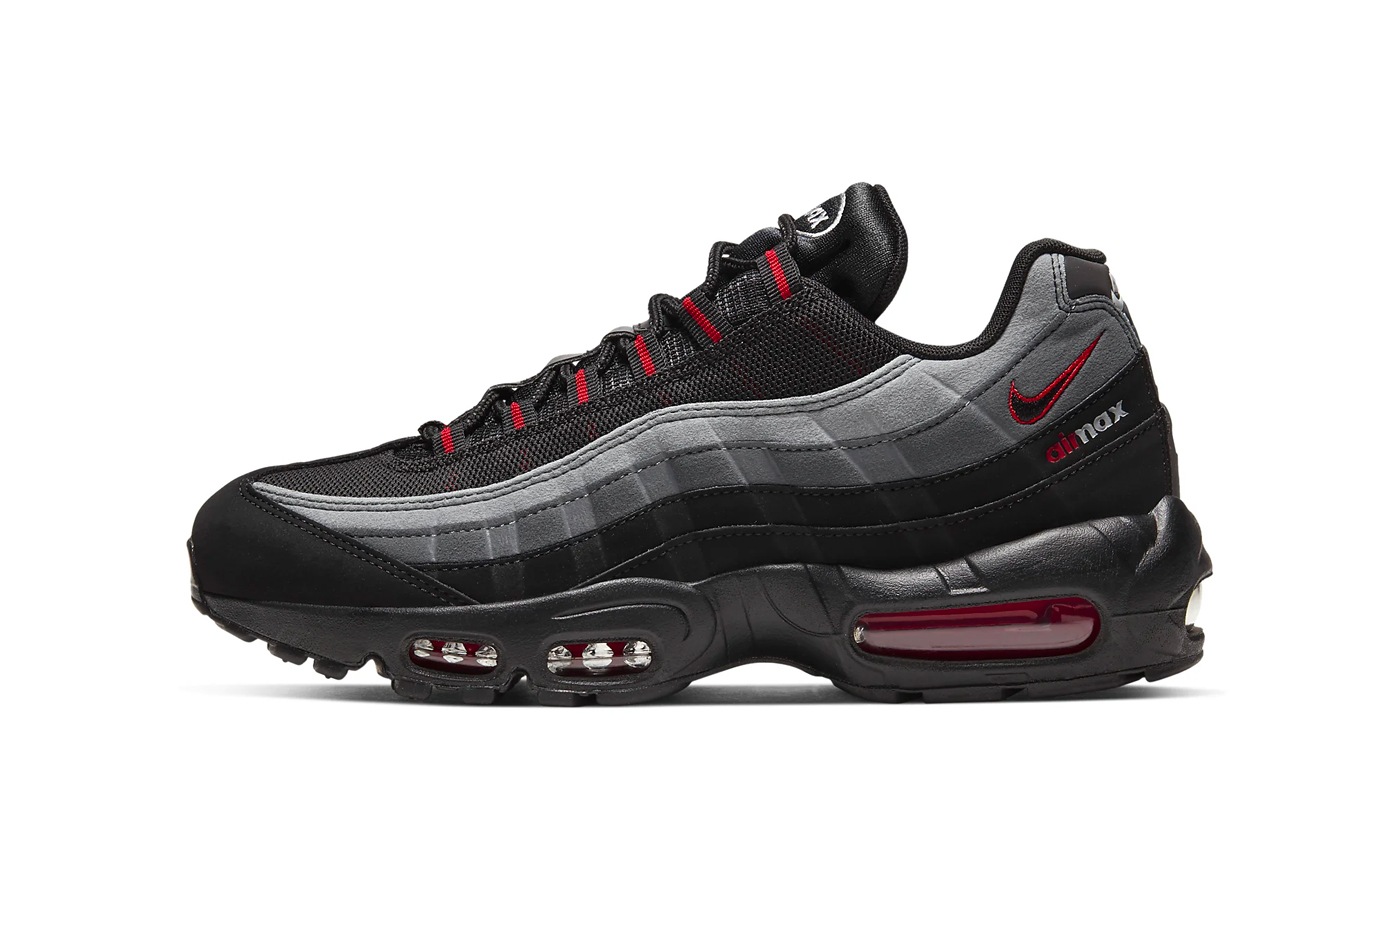 Nike Air Max 95 Iron Gray University Red black sneakers shoes footwear menswear spring summer 2020 collection swoosh runners trainers kicks CW7477 001 air sole unit max air